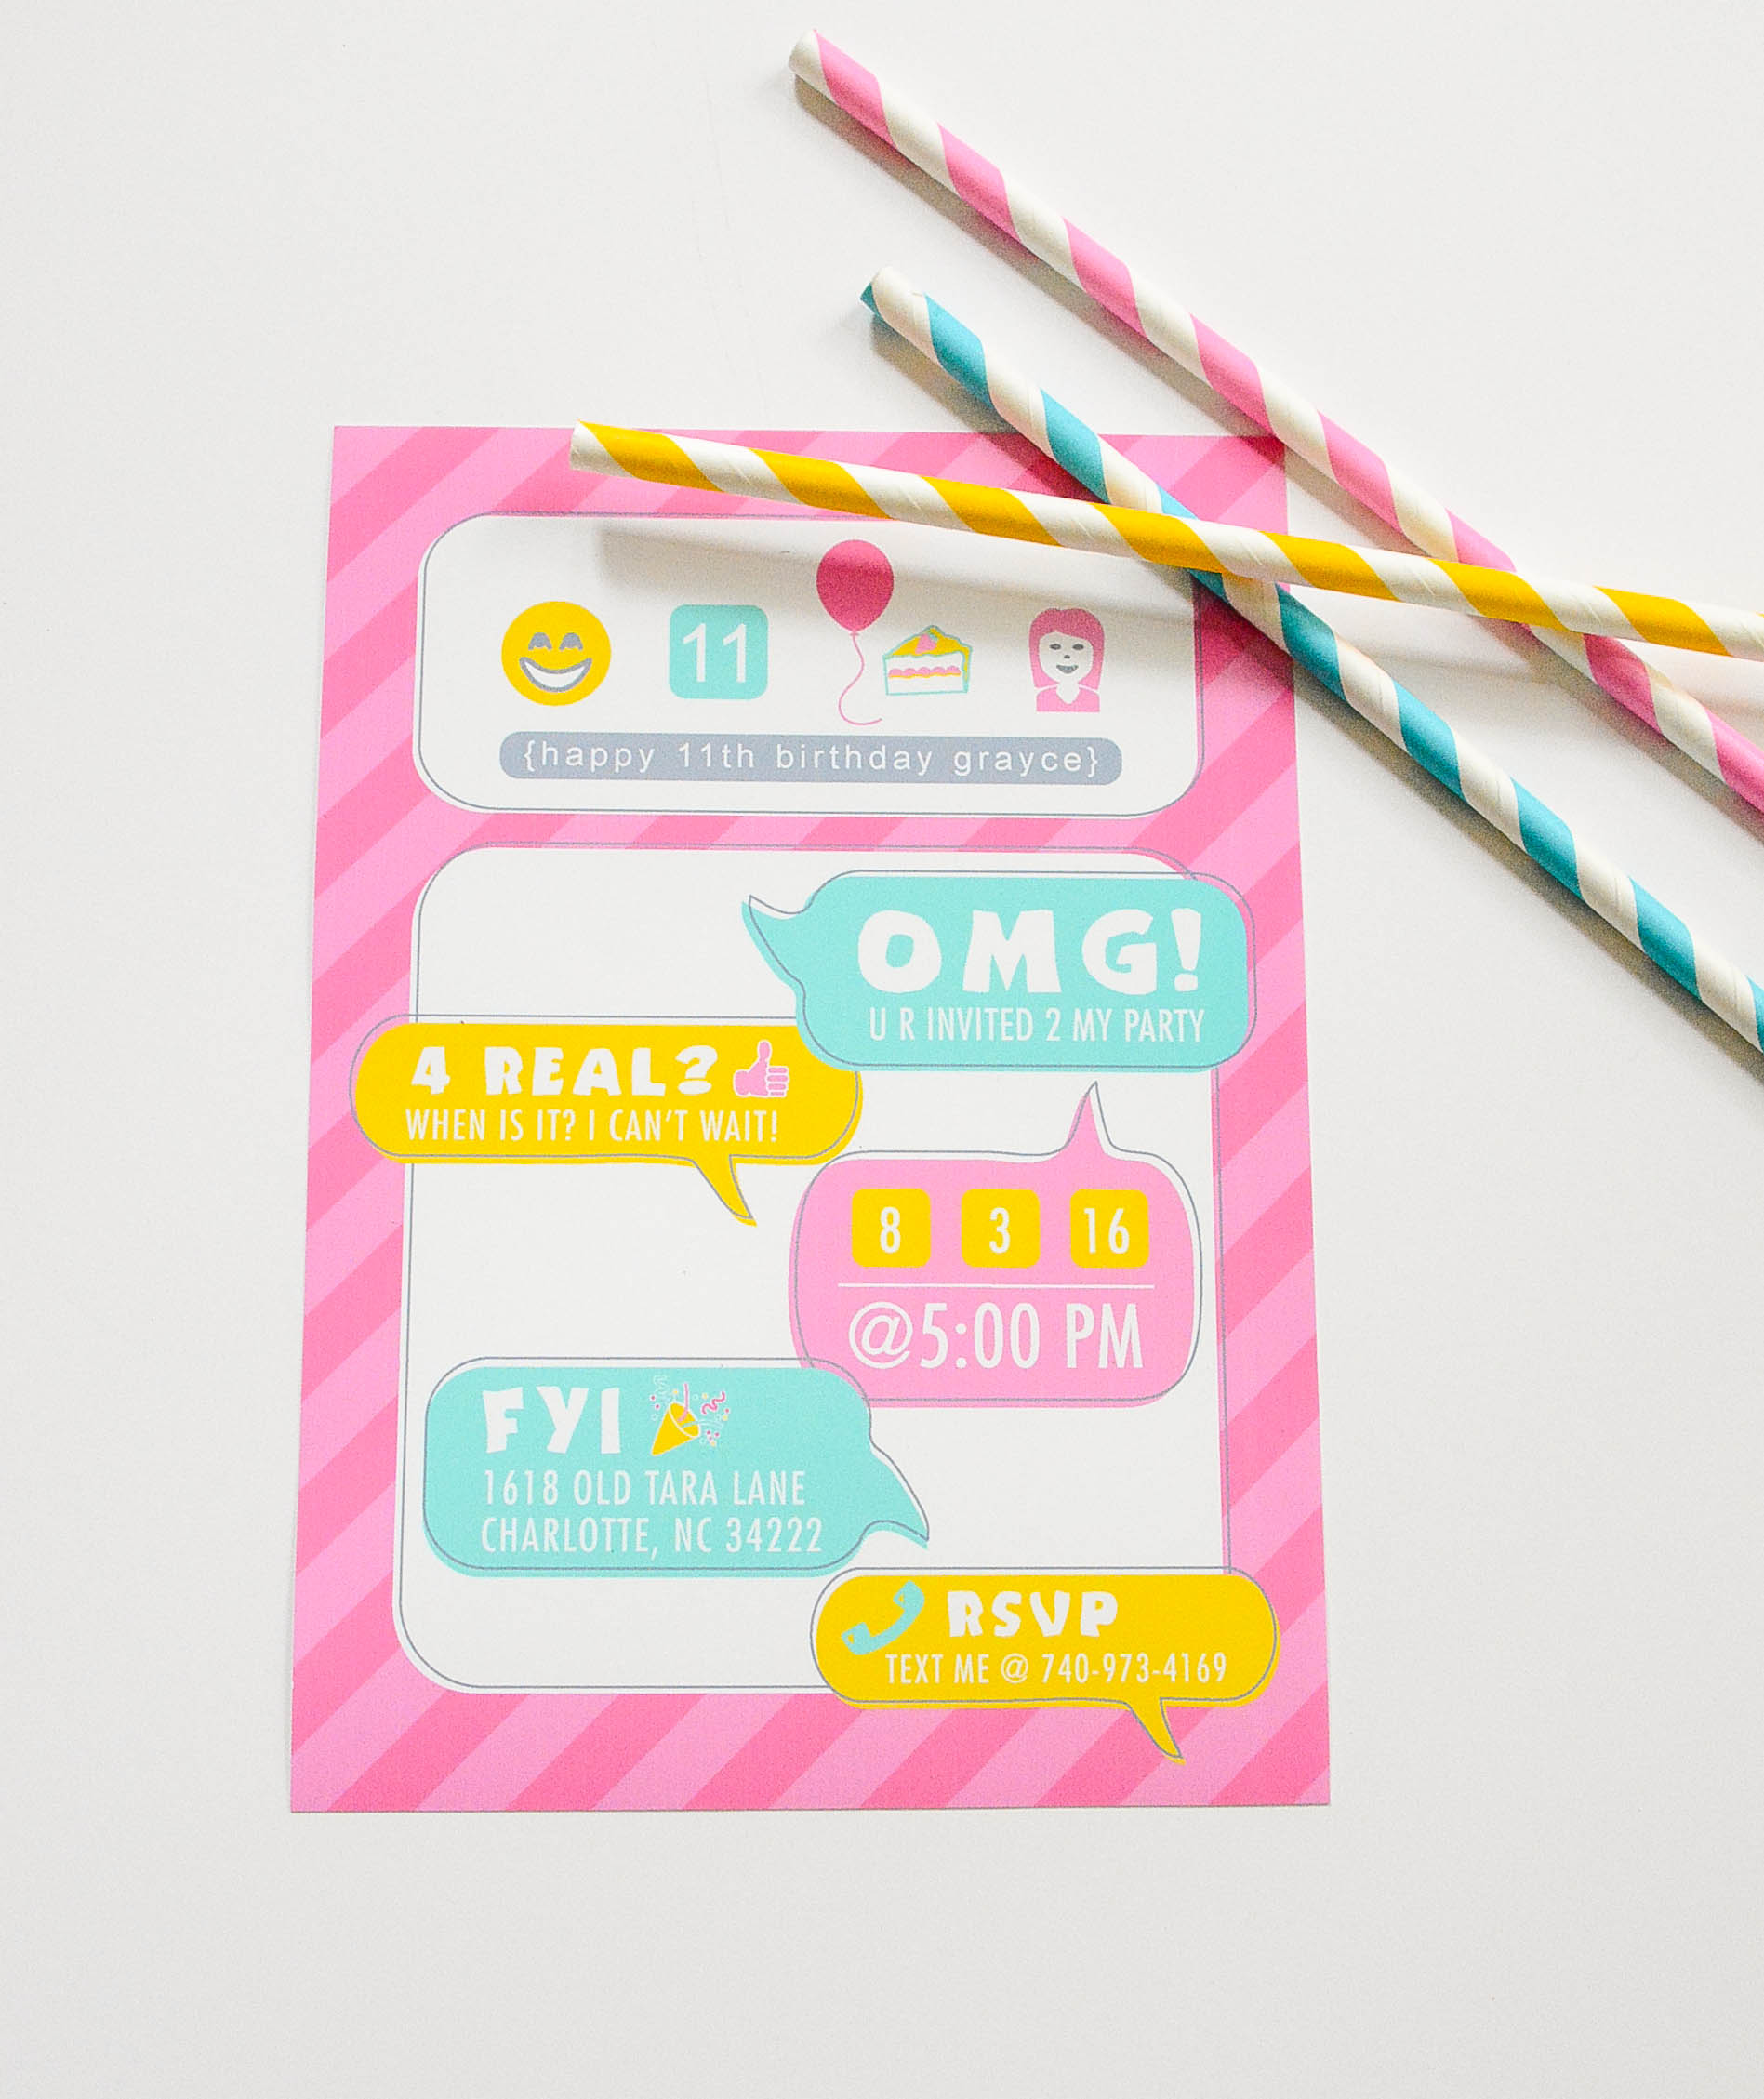 Ruff Draft Social Media Party Planning and NEW Invitation – 11th Birthday Party Invitations